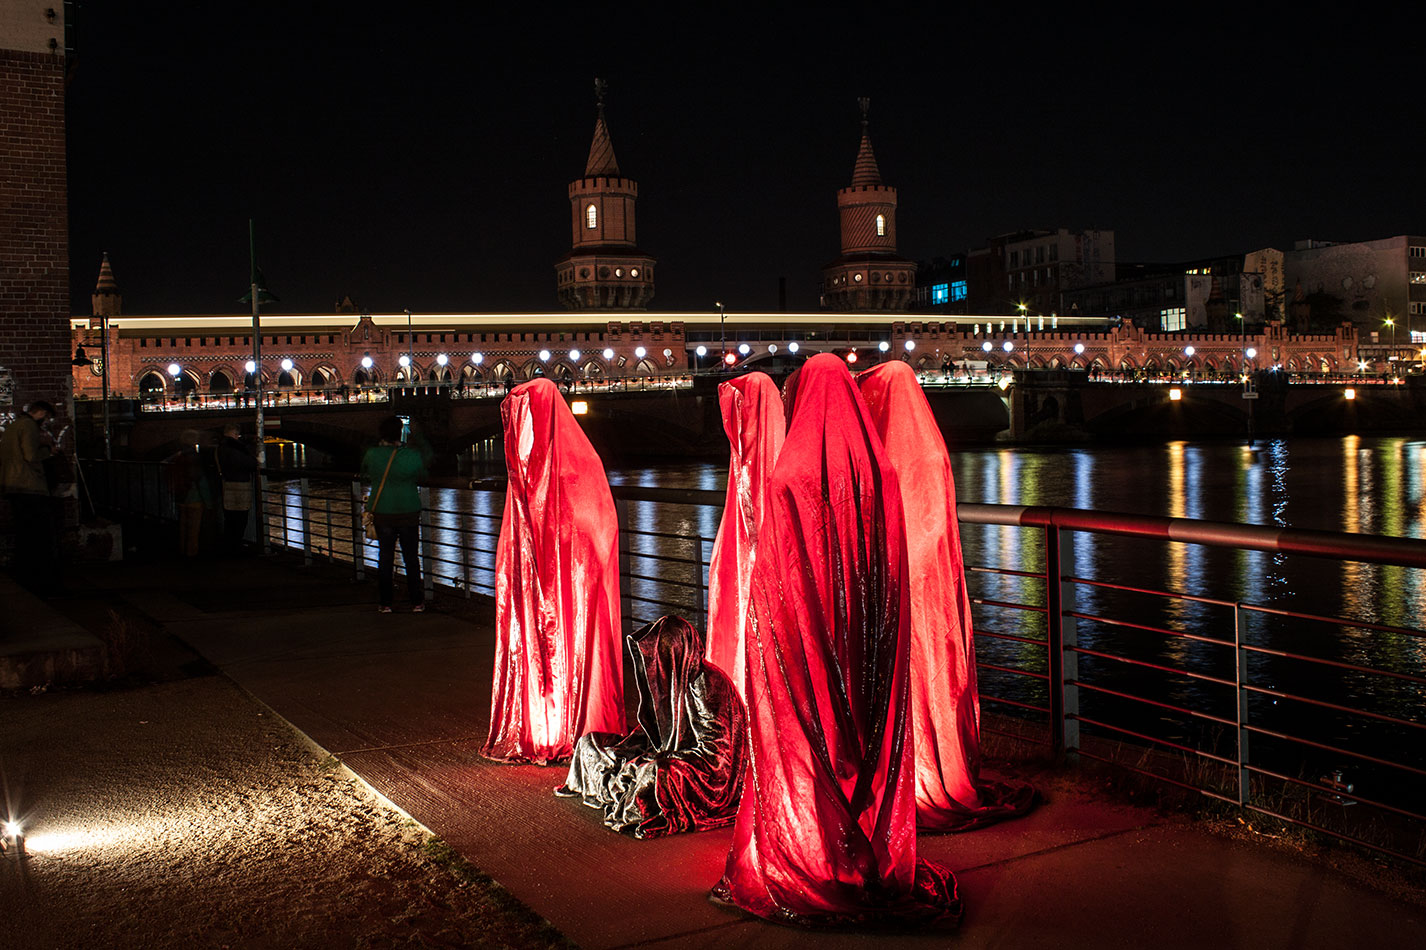 25-years-wallfall-berlin-germany-east-side-gallery-contemporary-fine-art-show-arts-design-guardians-of-time-manfred-kili-kielnhofer-4504